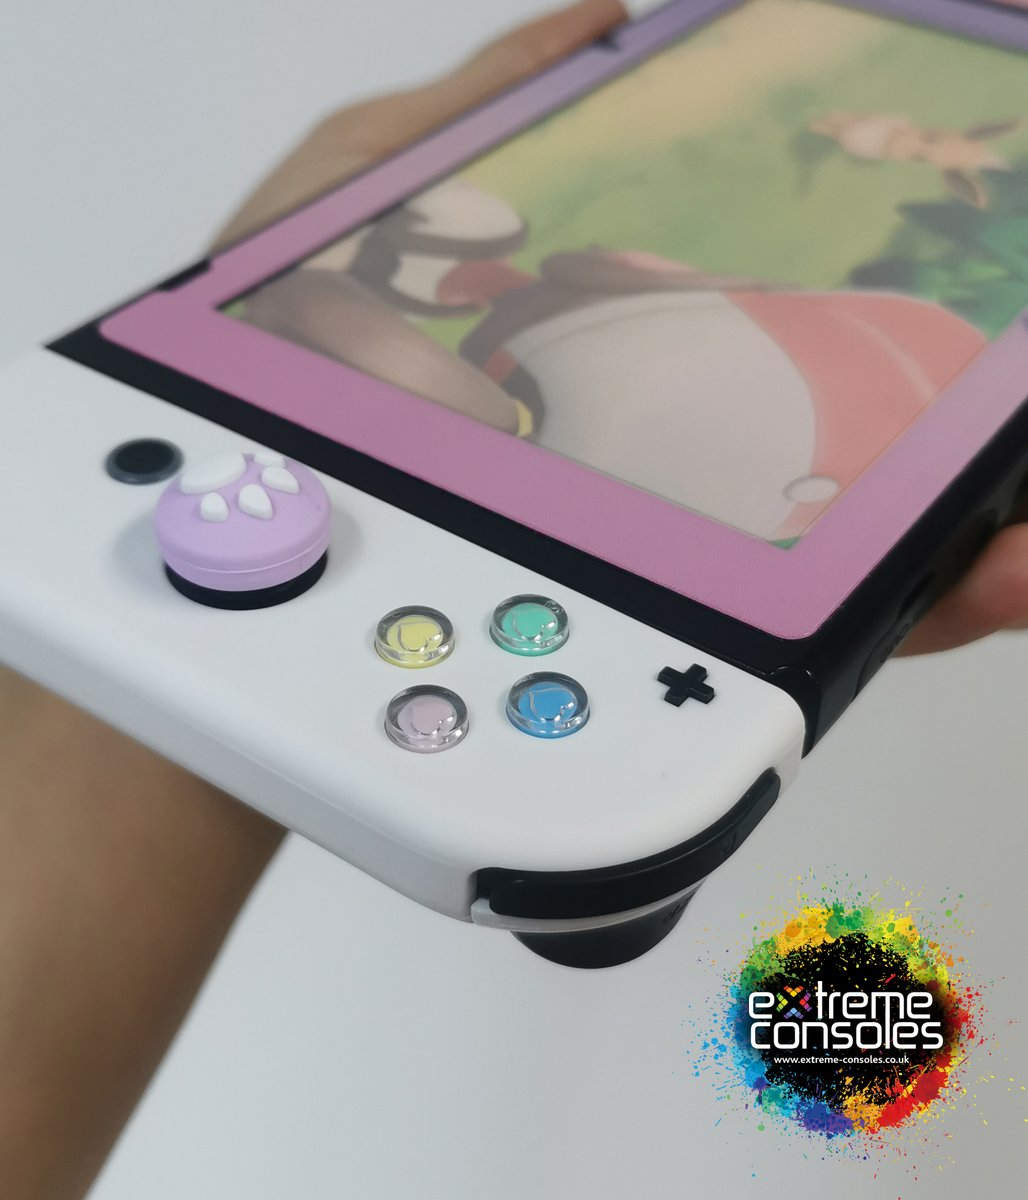 Groove is in the Heart #Nintendo #NintendoSwitch #JoyCon #AnimalCrossing #customcontroller #gamers #hearts #GamersUnitepic.twitter.com/GevHVtHpBy